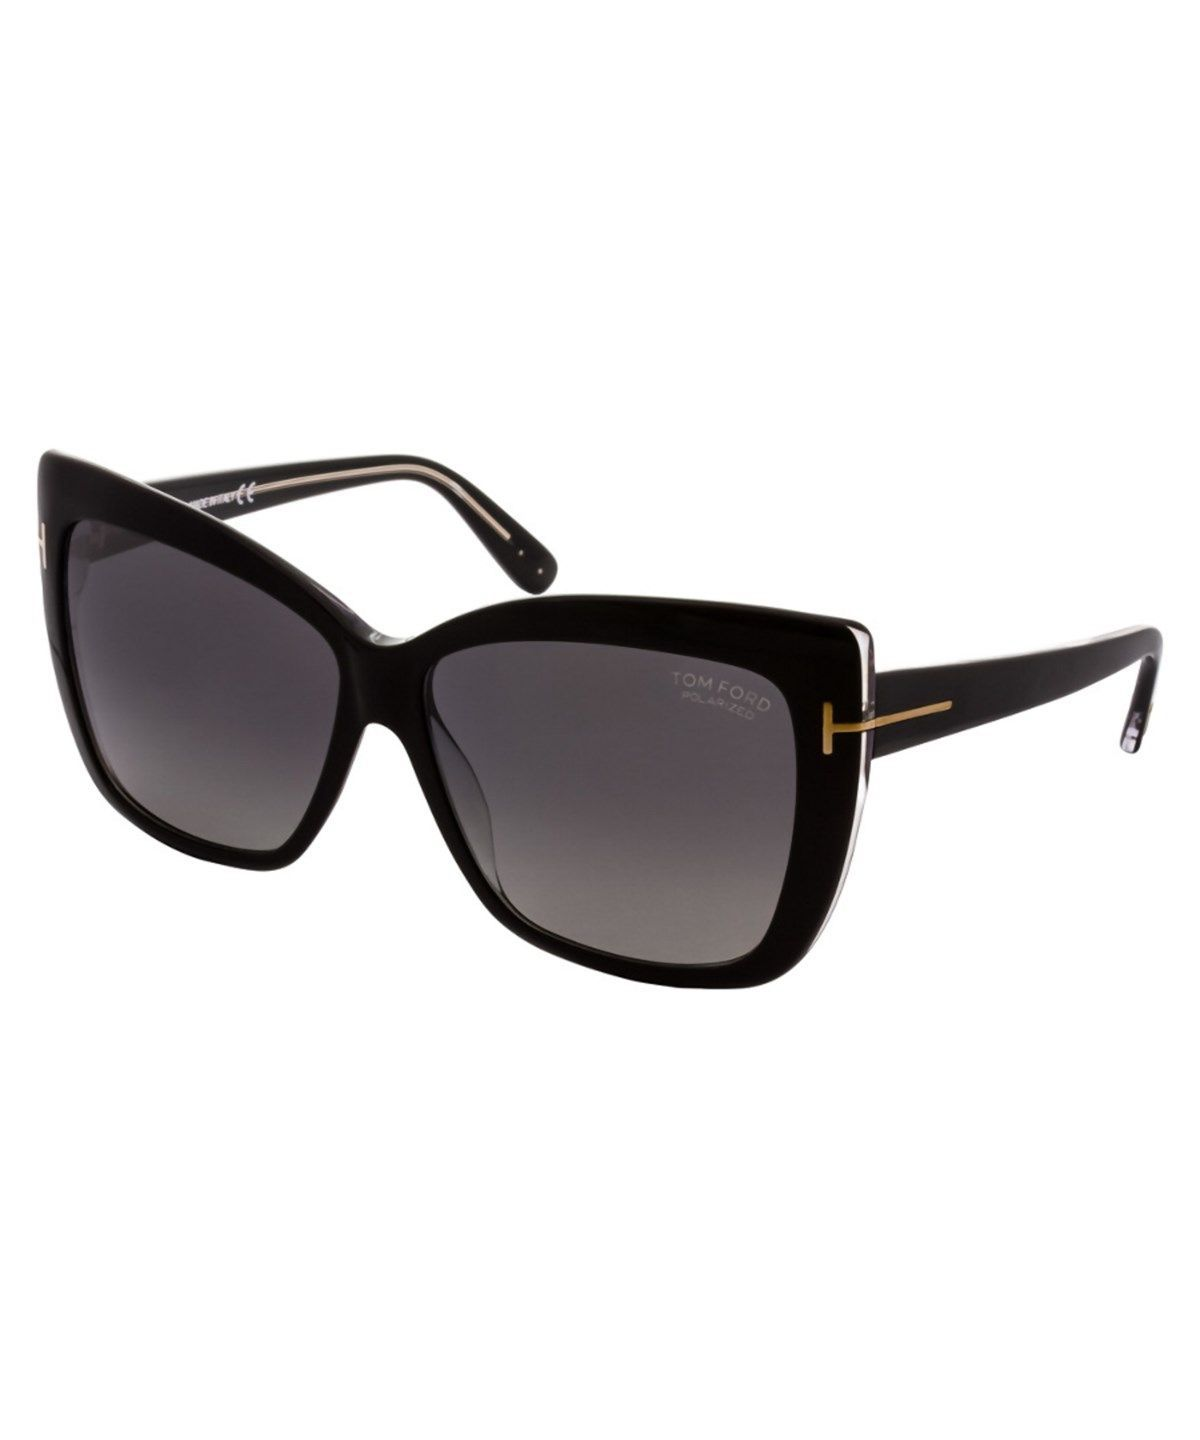 759569613c729 TOM FORD TOM FORD WOMEN S IRINA SUNGLASSES .  tomford  sunglasses   women swatchesjewelry